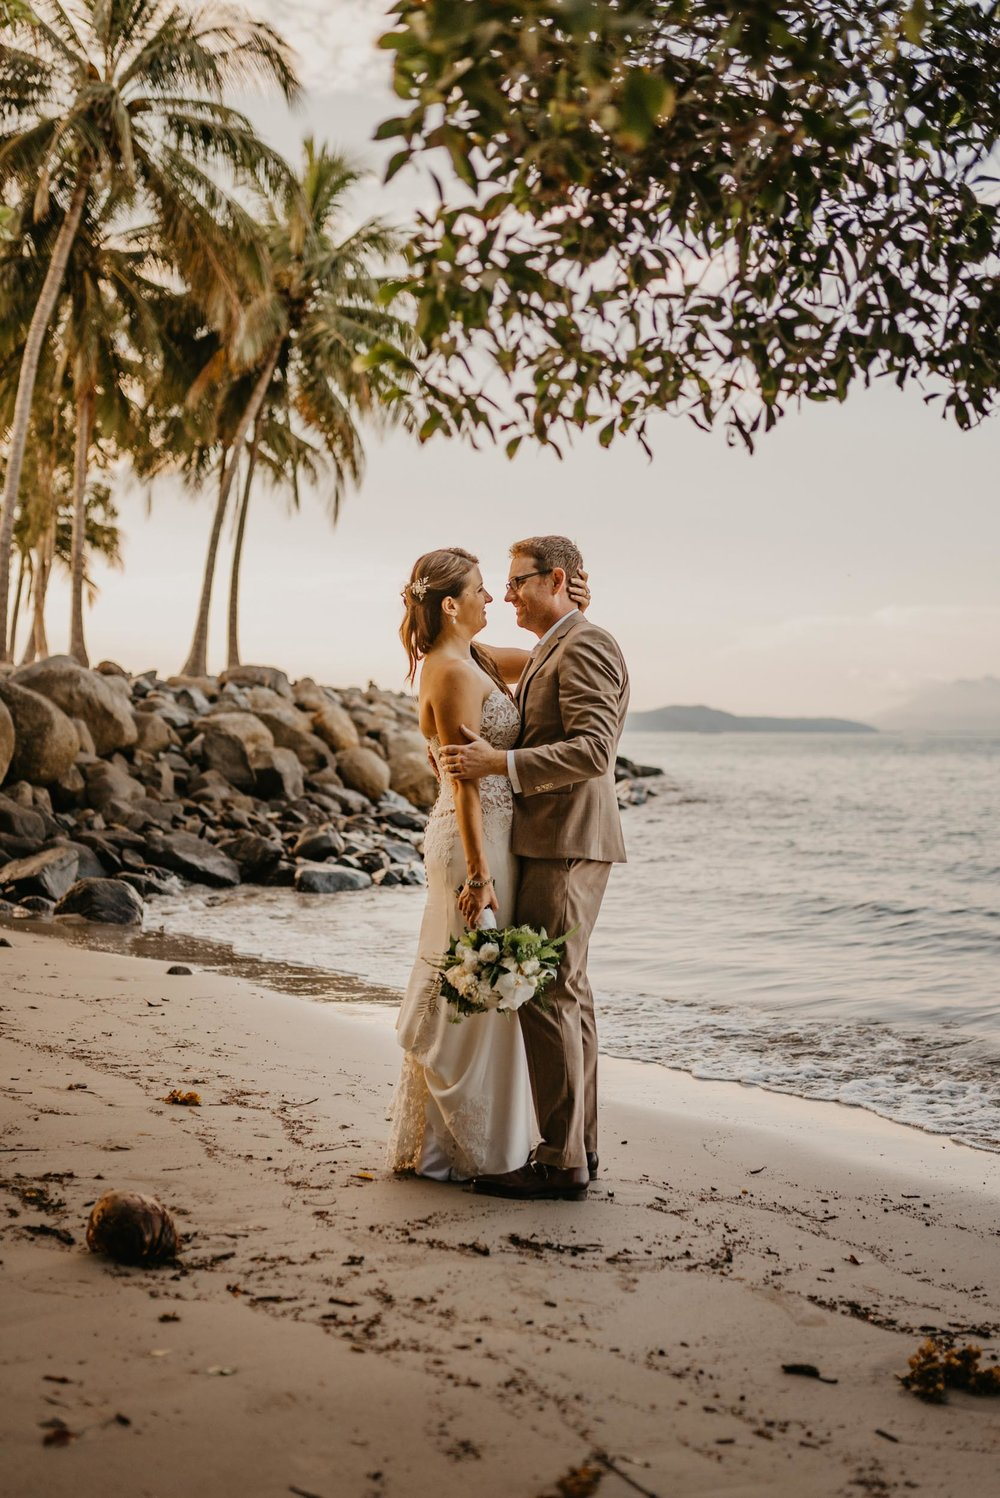 The Raw Photographer - Cairns Wedding Photographer - Sugar Wharf - Port Douglas Reception - Little Cove Ceremony-69.jpg